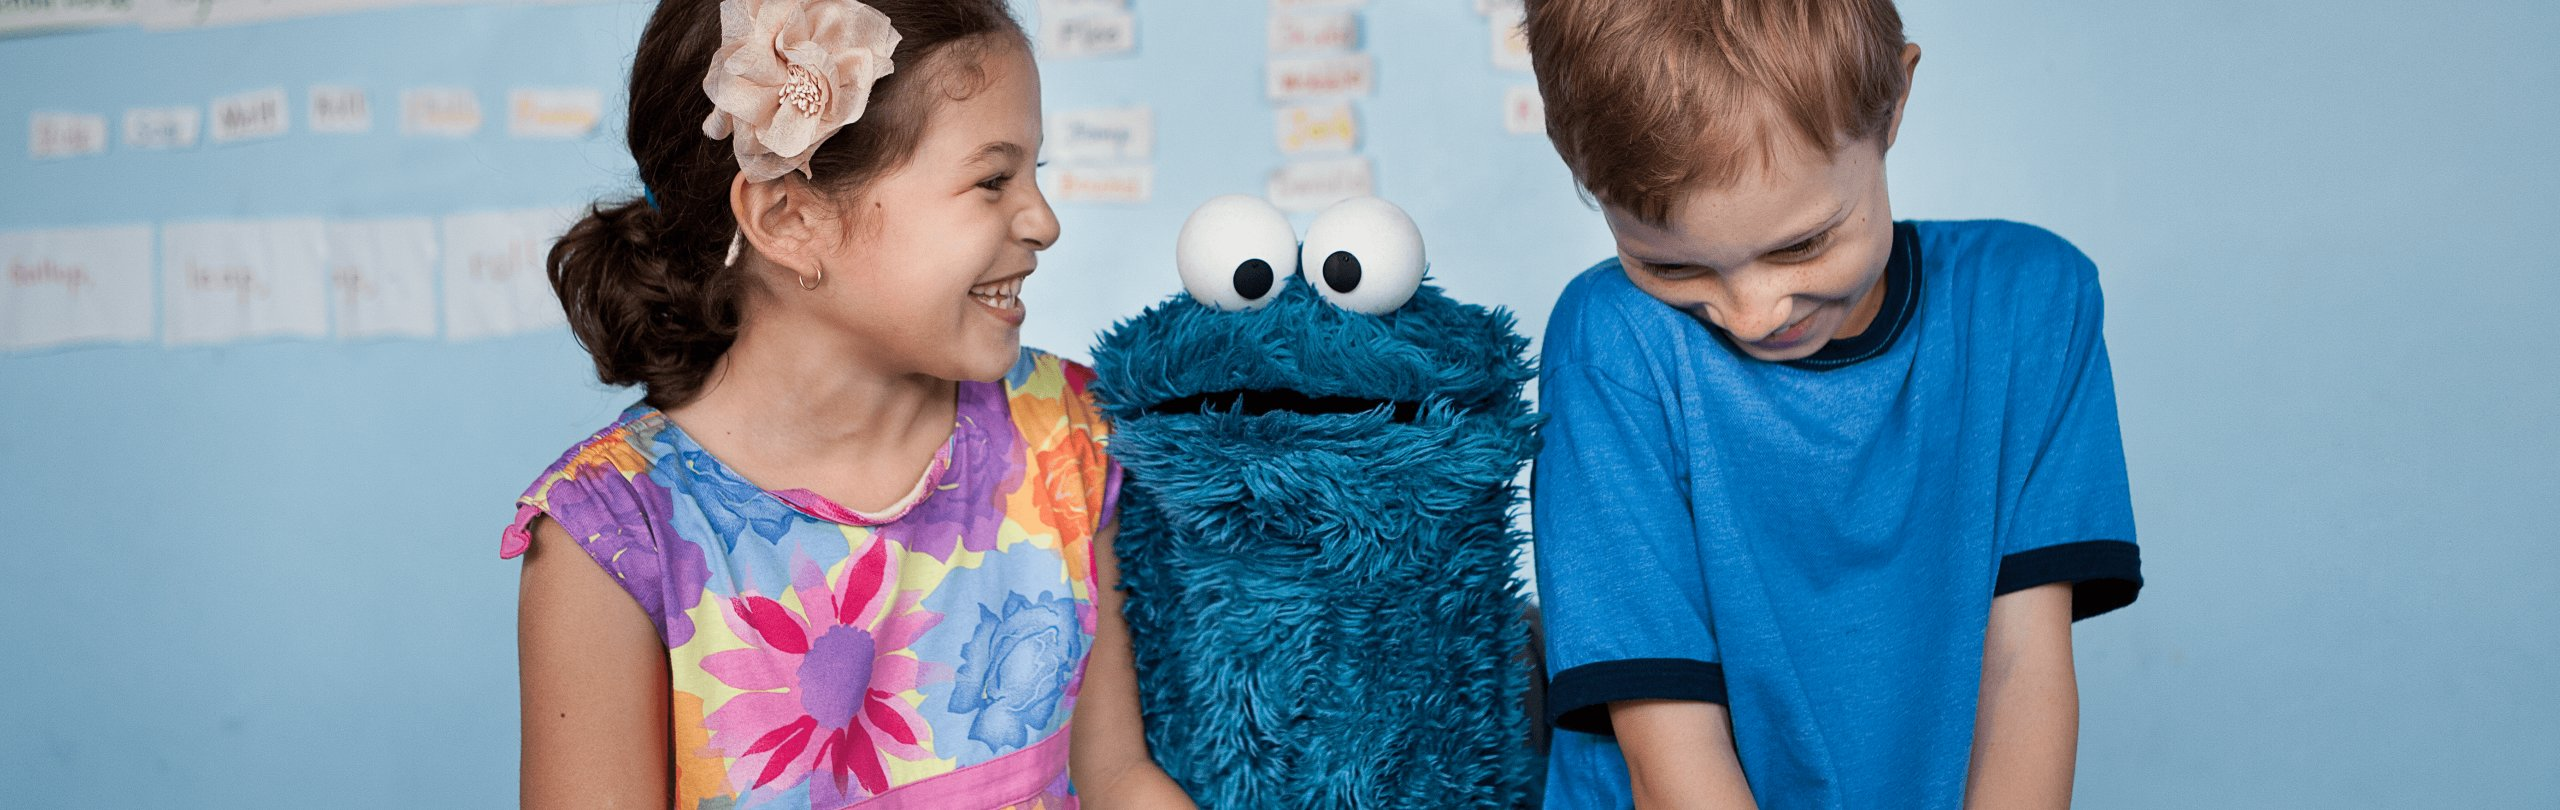 A girl and boy laugh while Cookie Monster looks between them